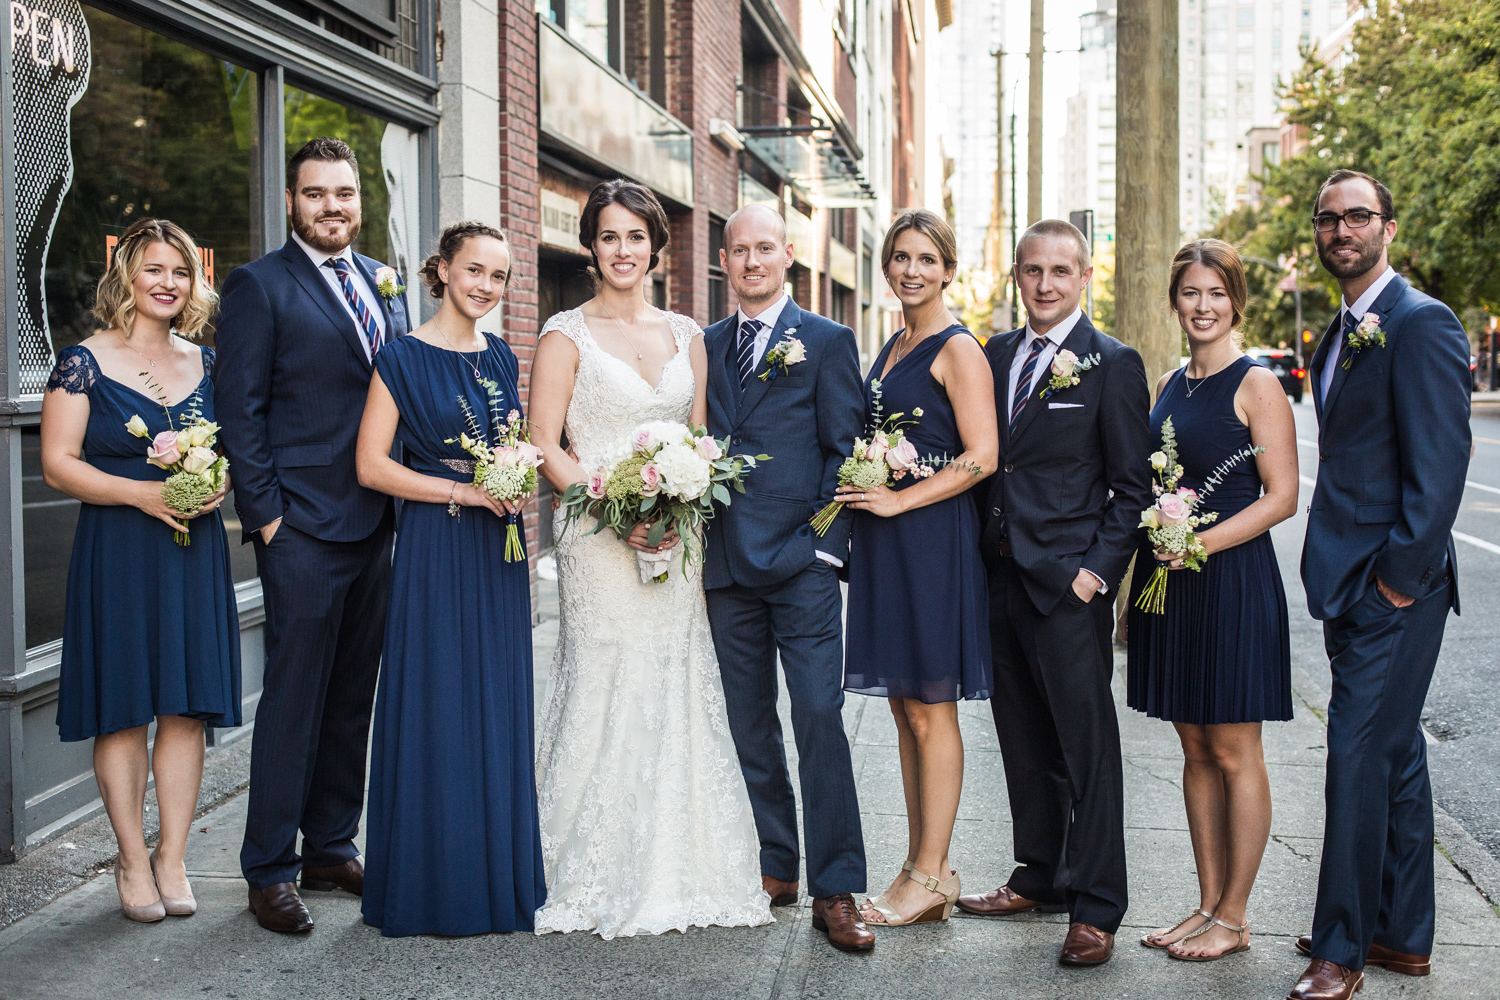 brix-mortar-wedding-yaletown-7-of-17